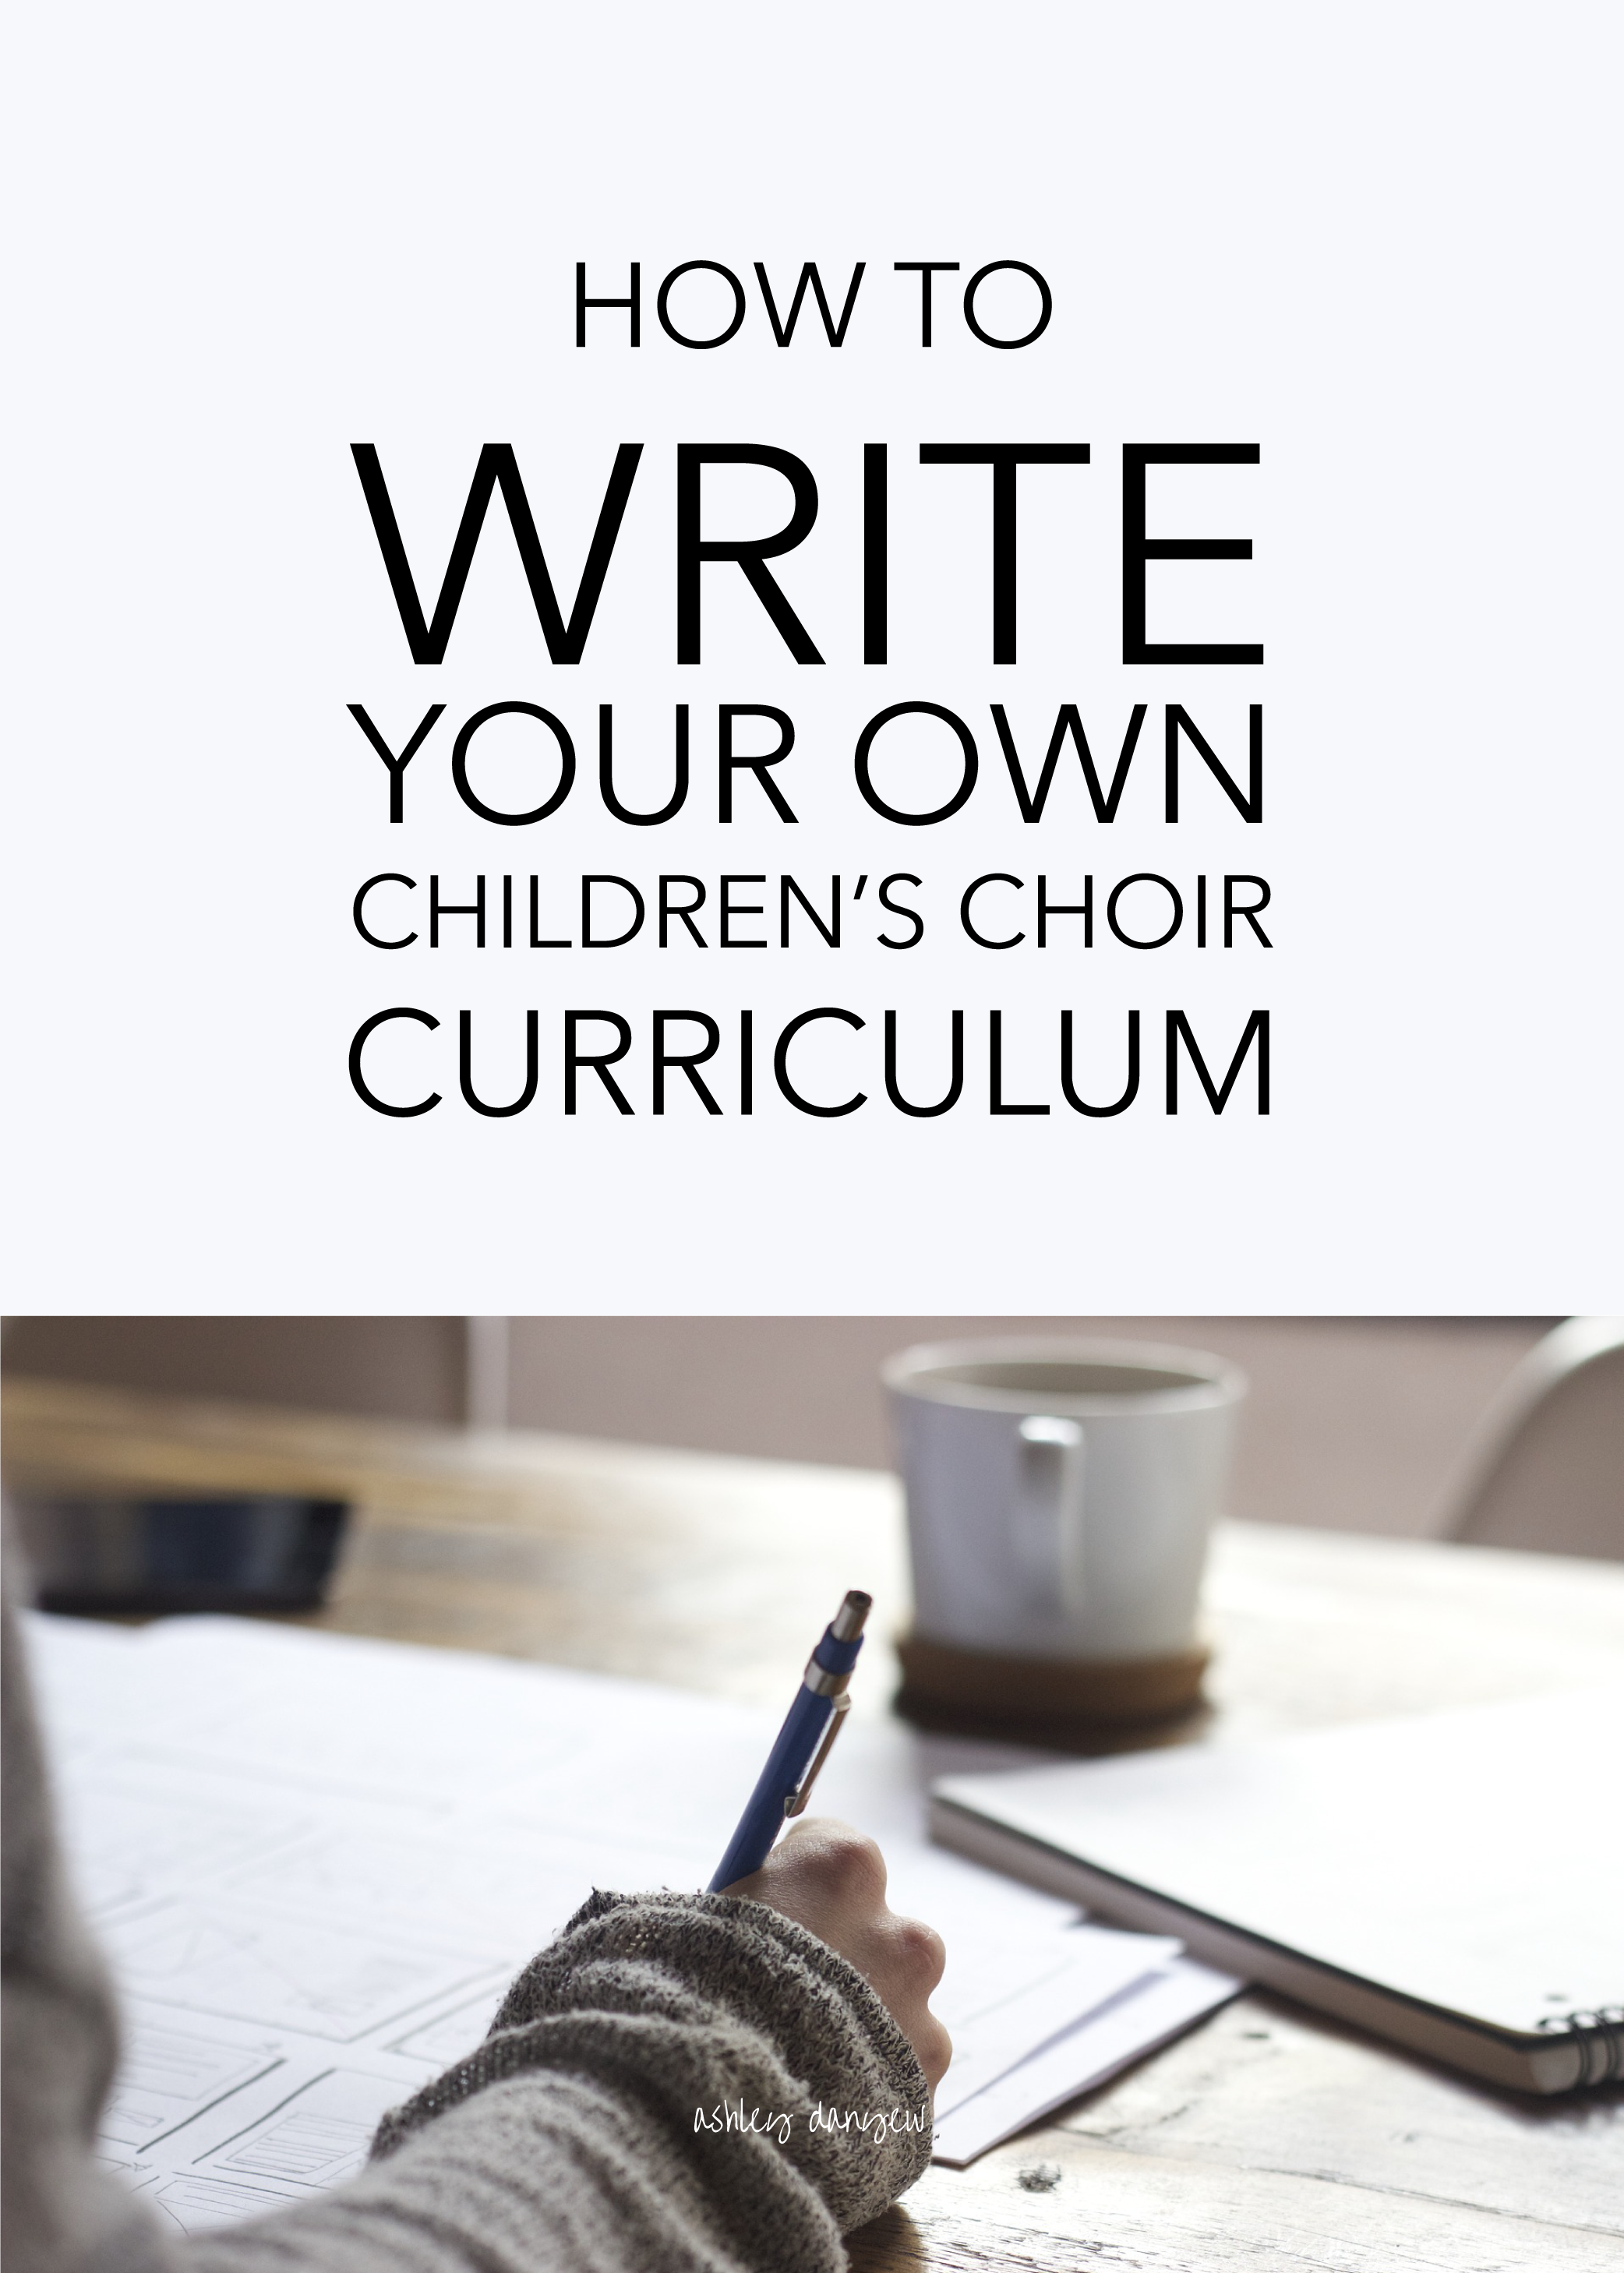 How to Write Your Own Children's Choir Curriculum-74.png